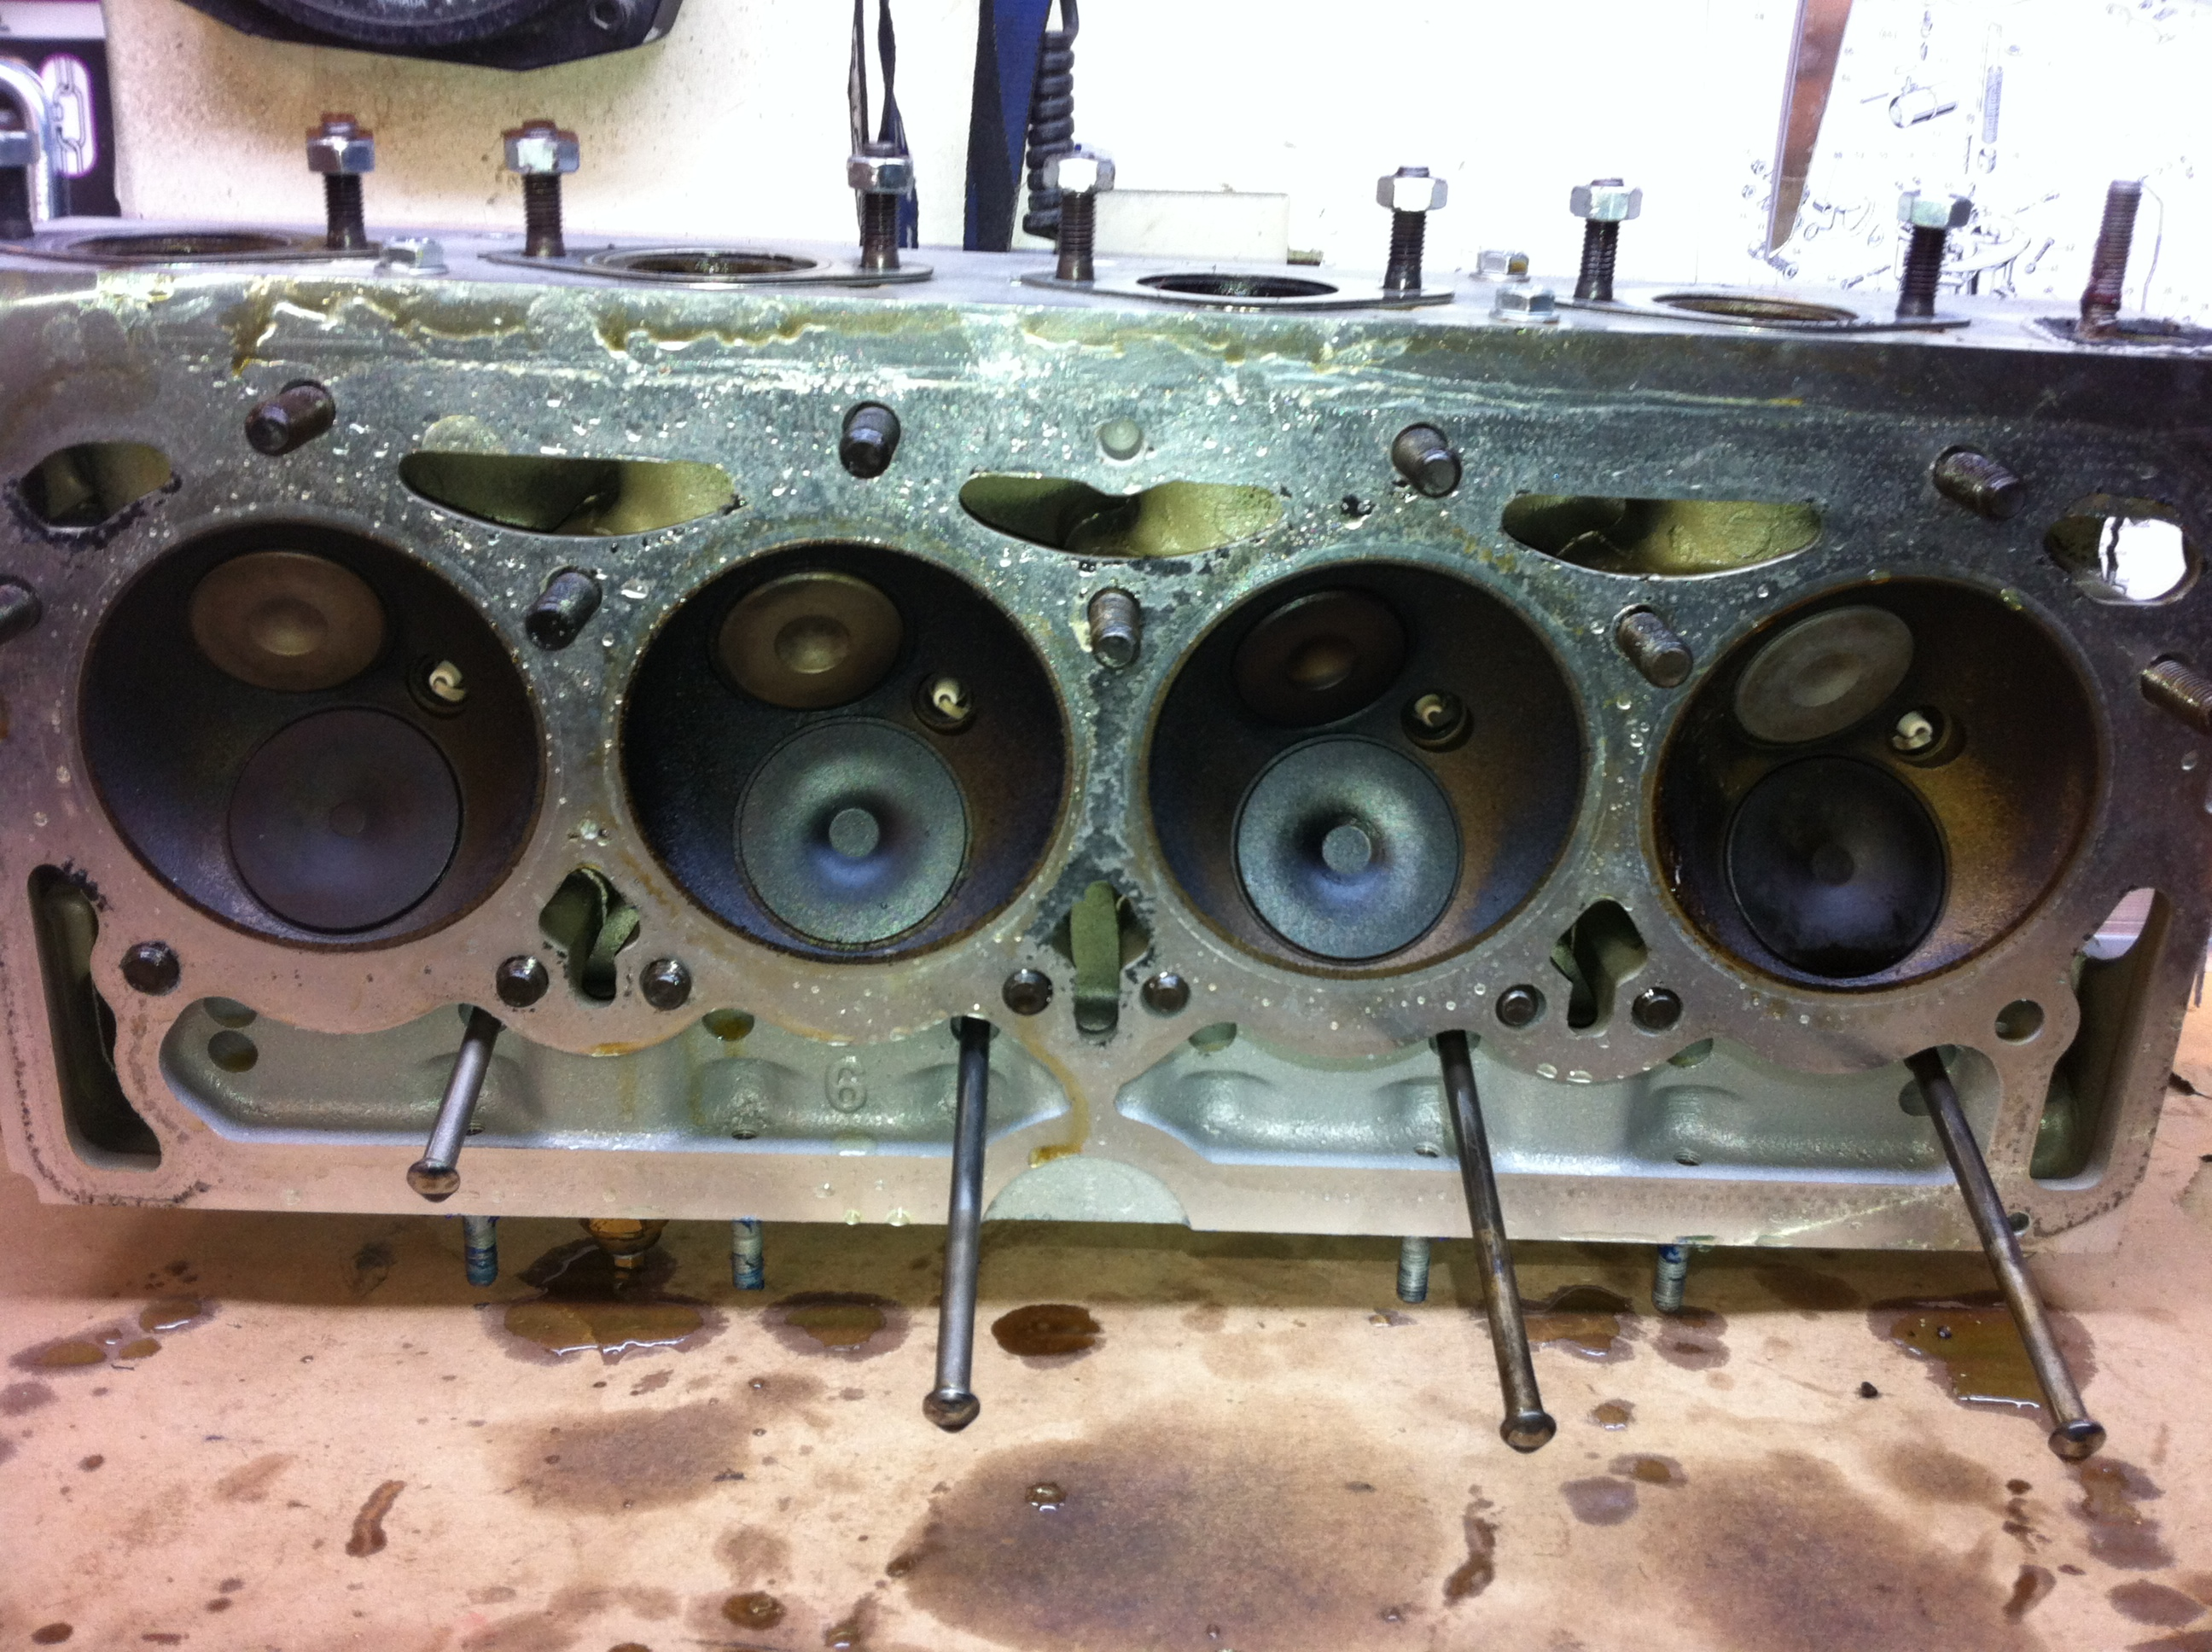 Head has oil residue built up thickly on the combustion chambers